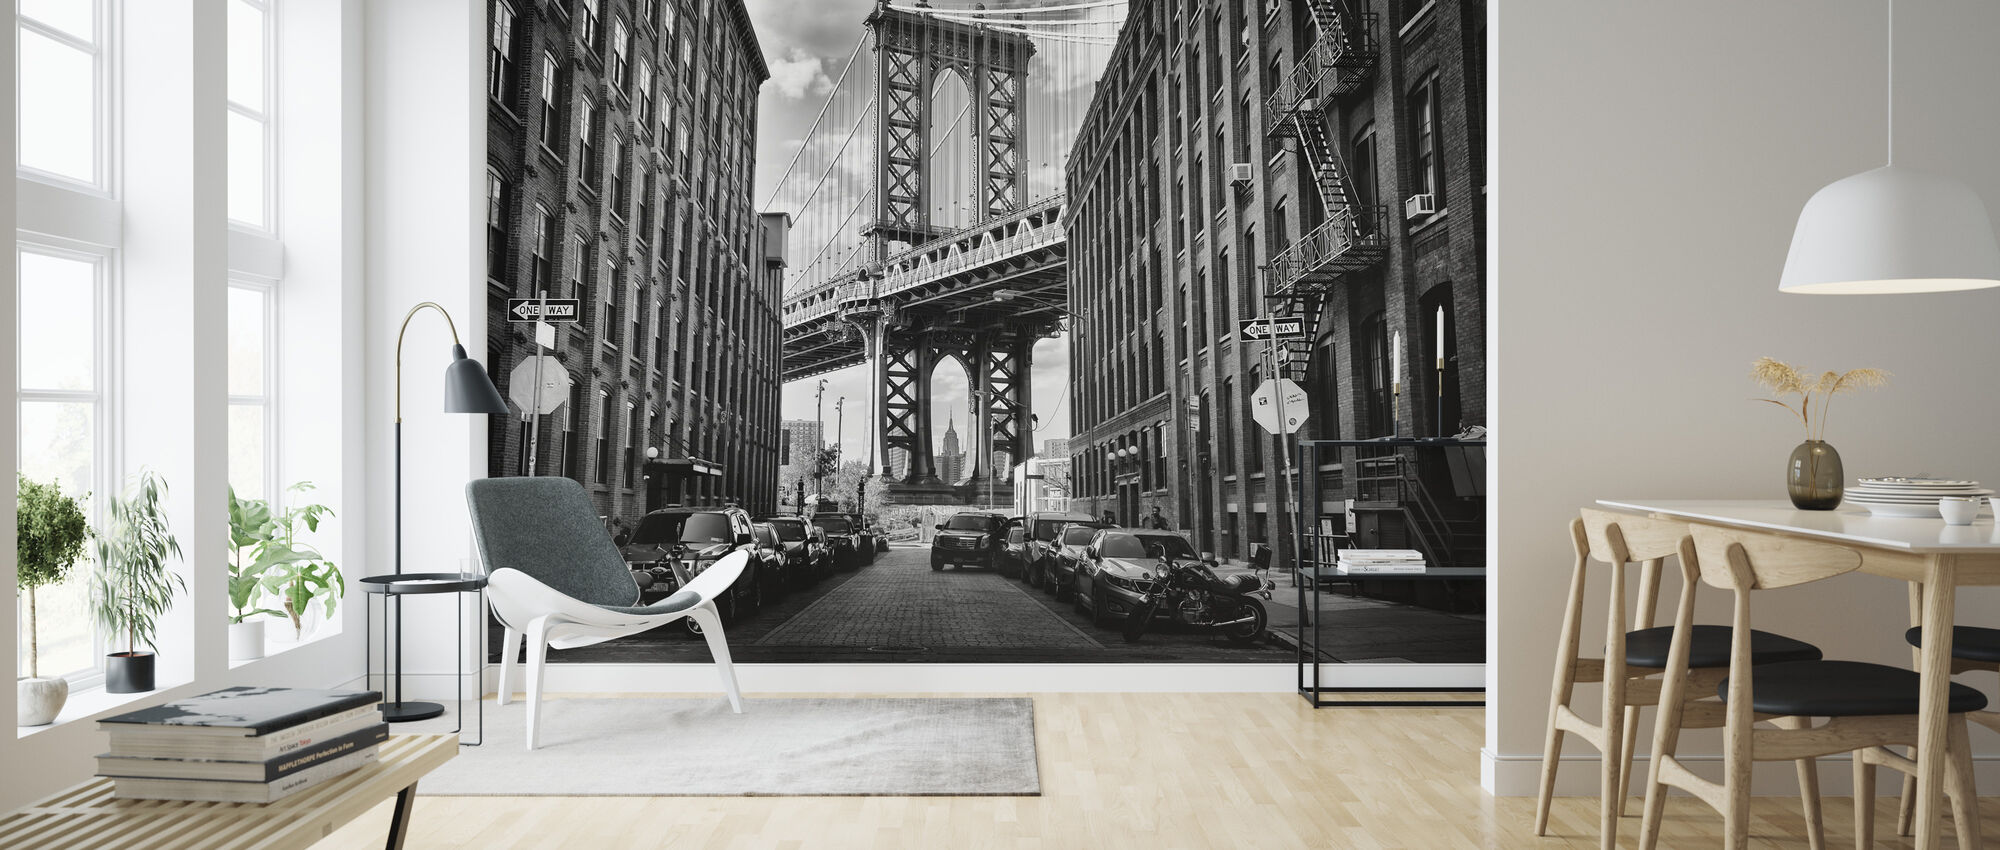 In America, black and white - Wallpaper - Living Room